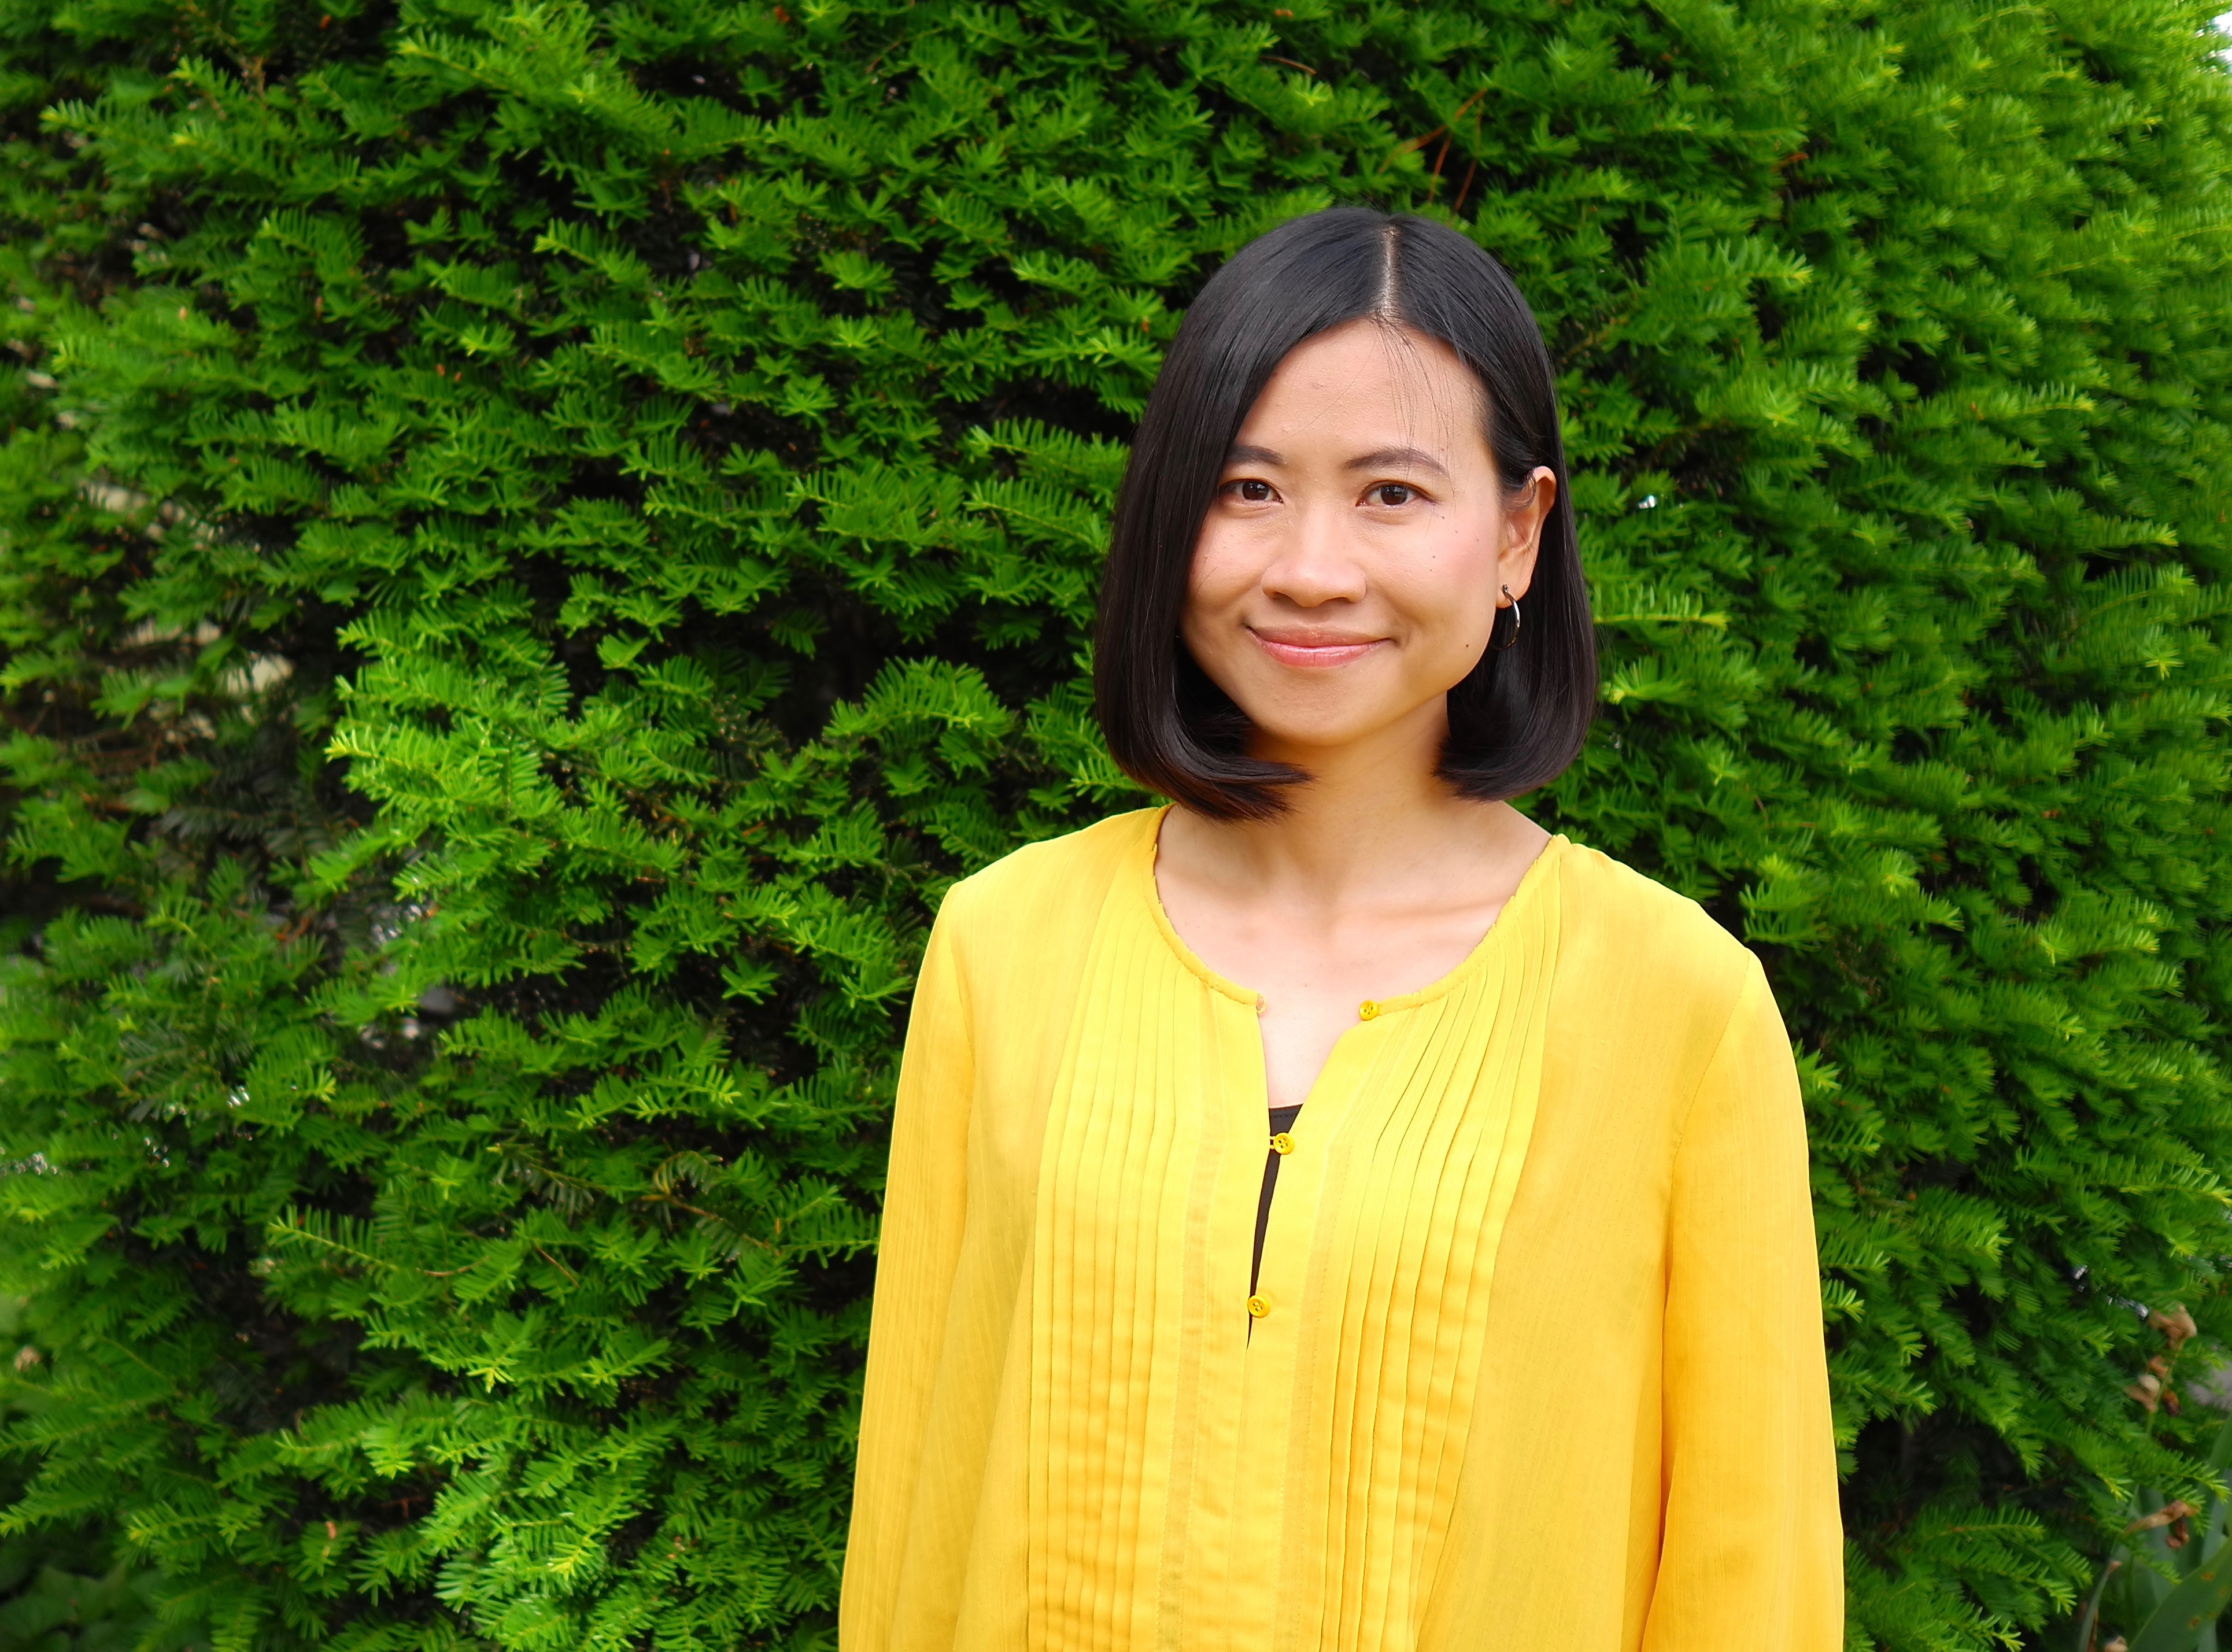 Graduate student Kongjing Xing wears a bright yellow shirt standing in front of a leafy, green tree